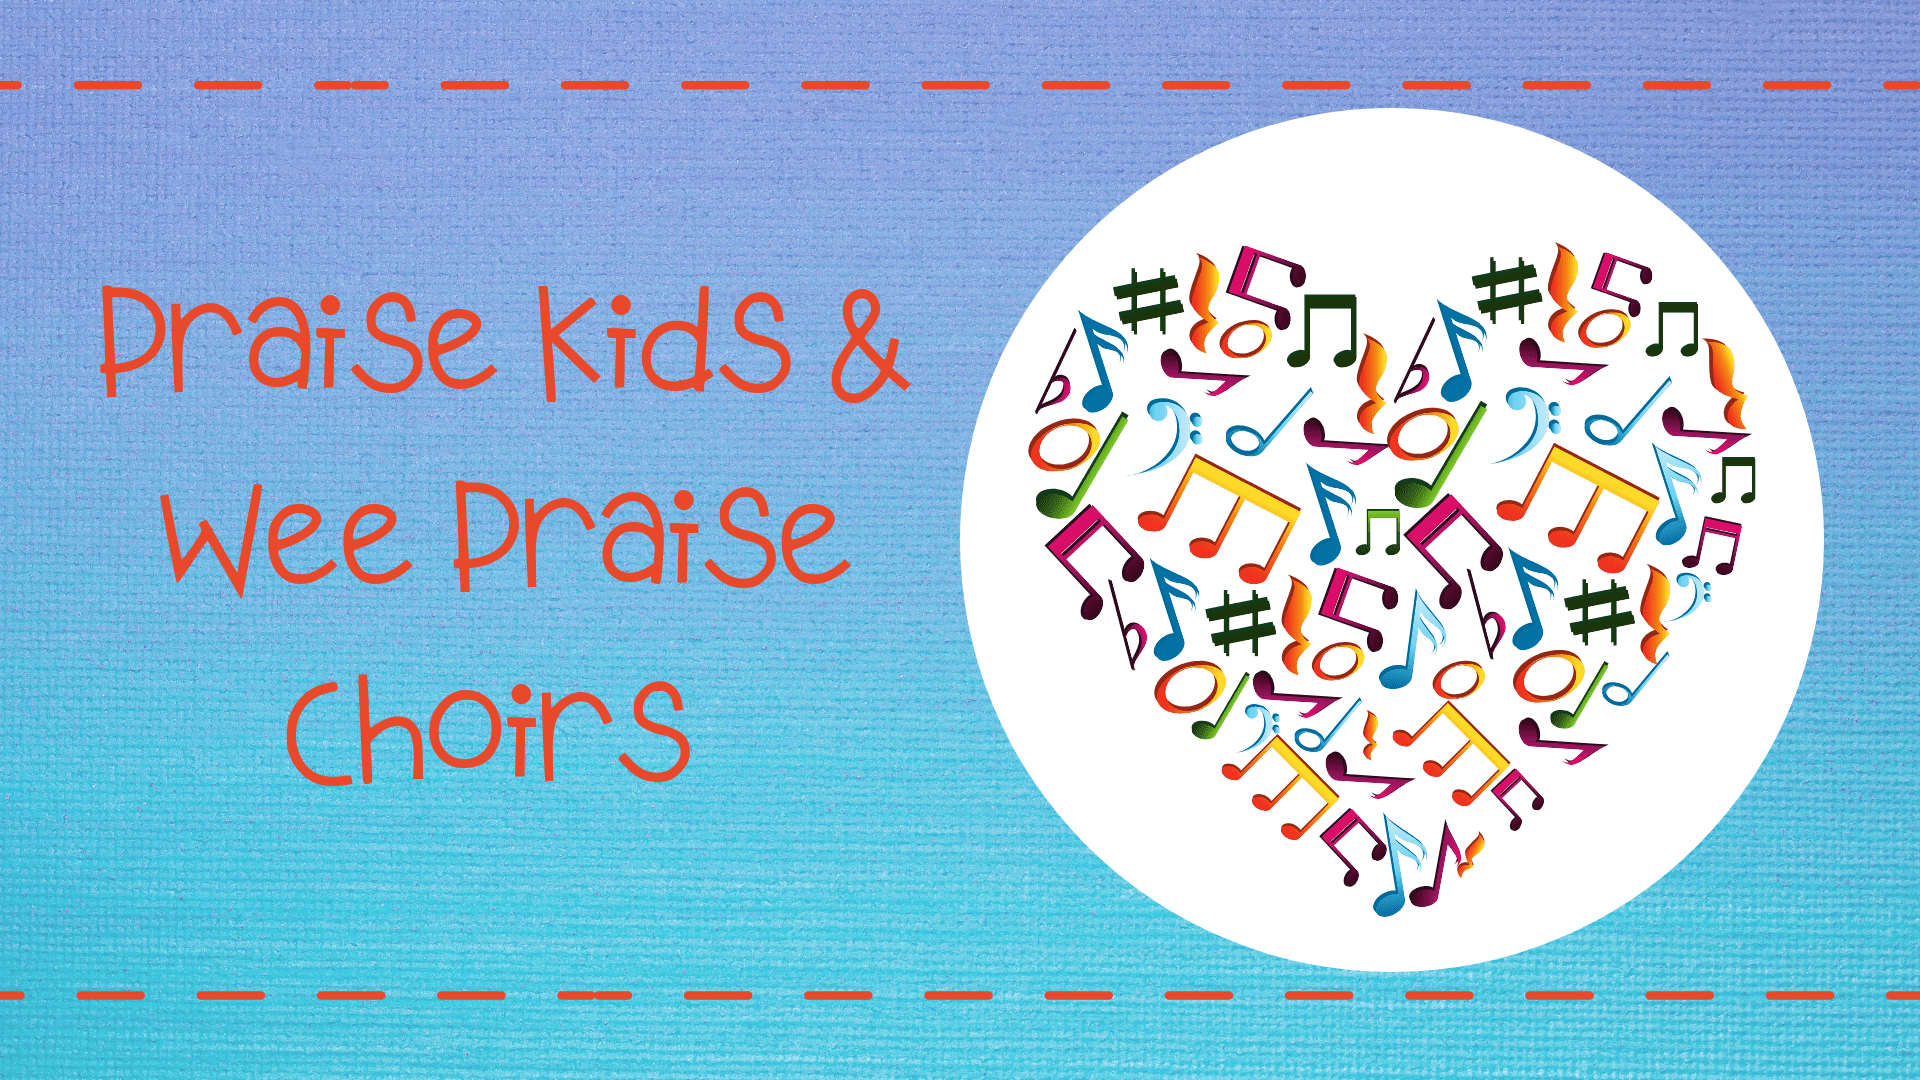 Praise Kids & Wee Praise Choirs